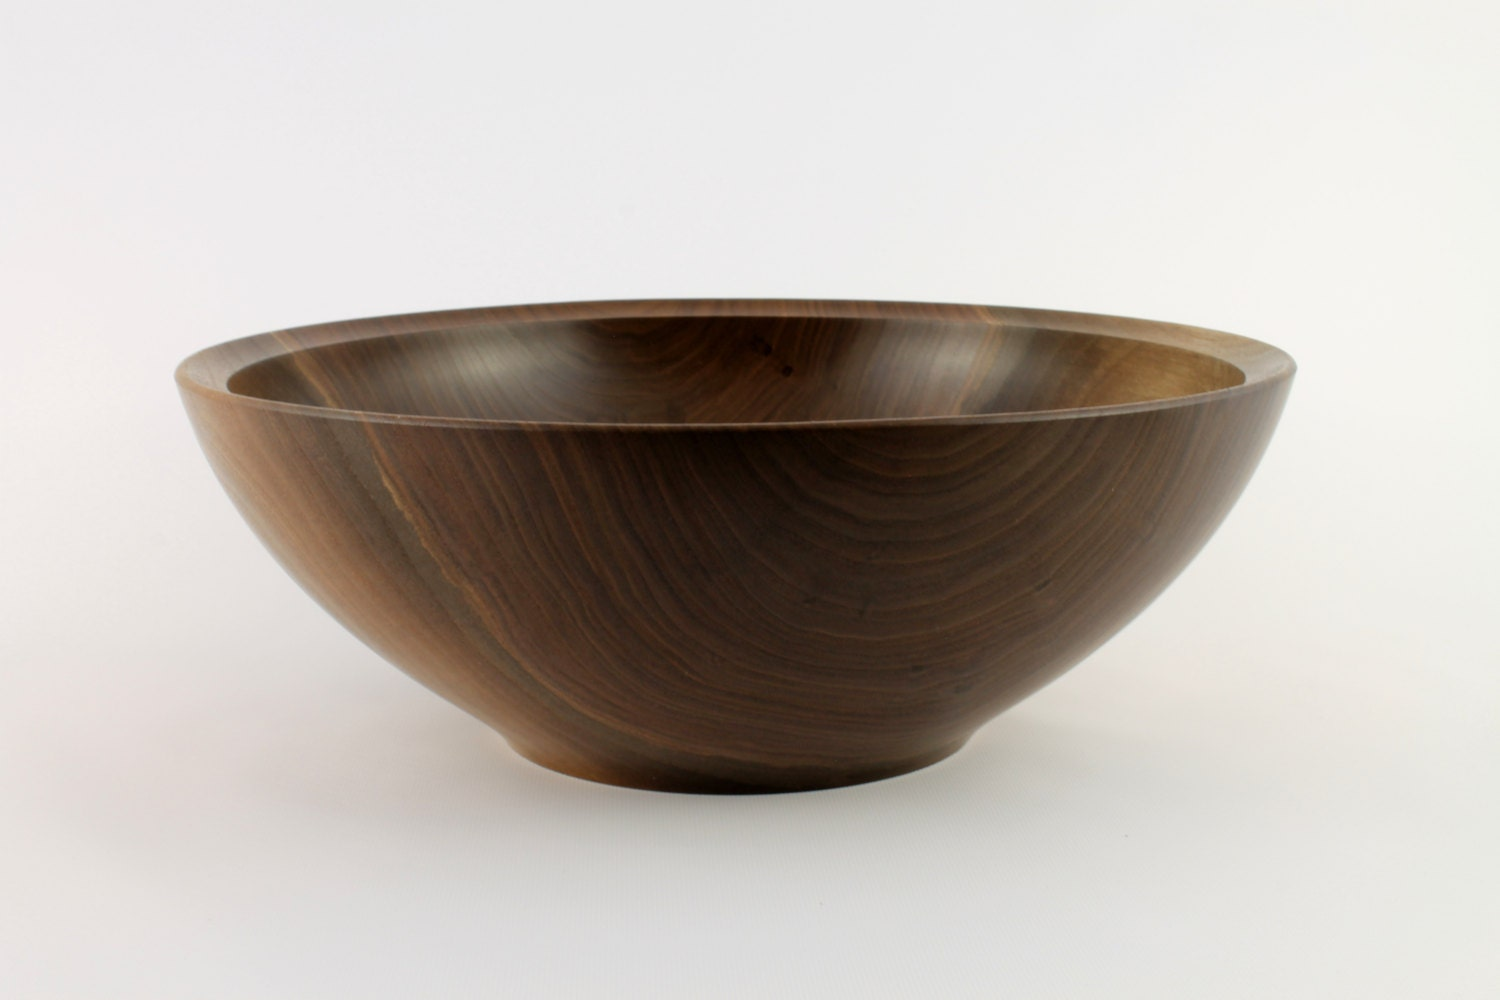 handmade wooden salad bowl handmade wooden salad bowl crafted with care by 444